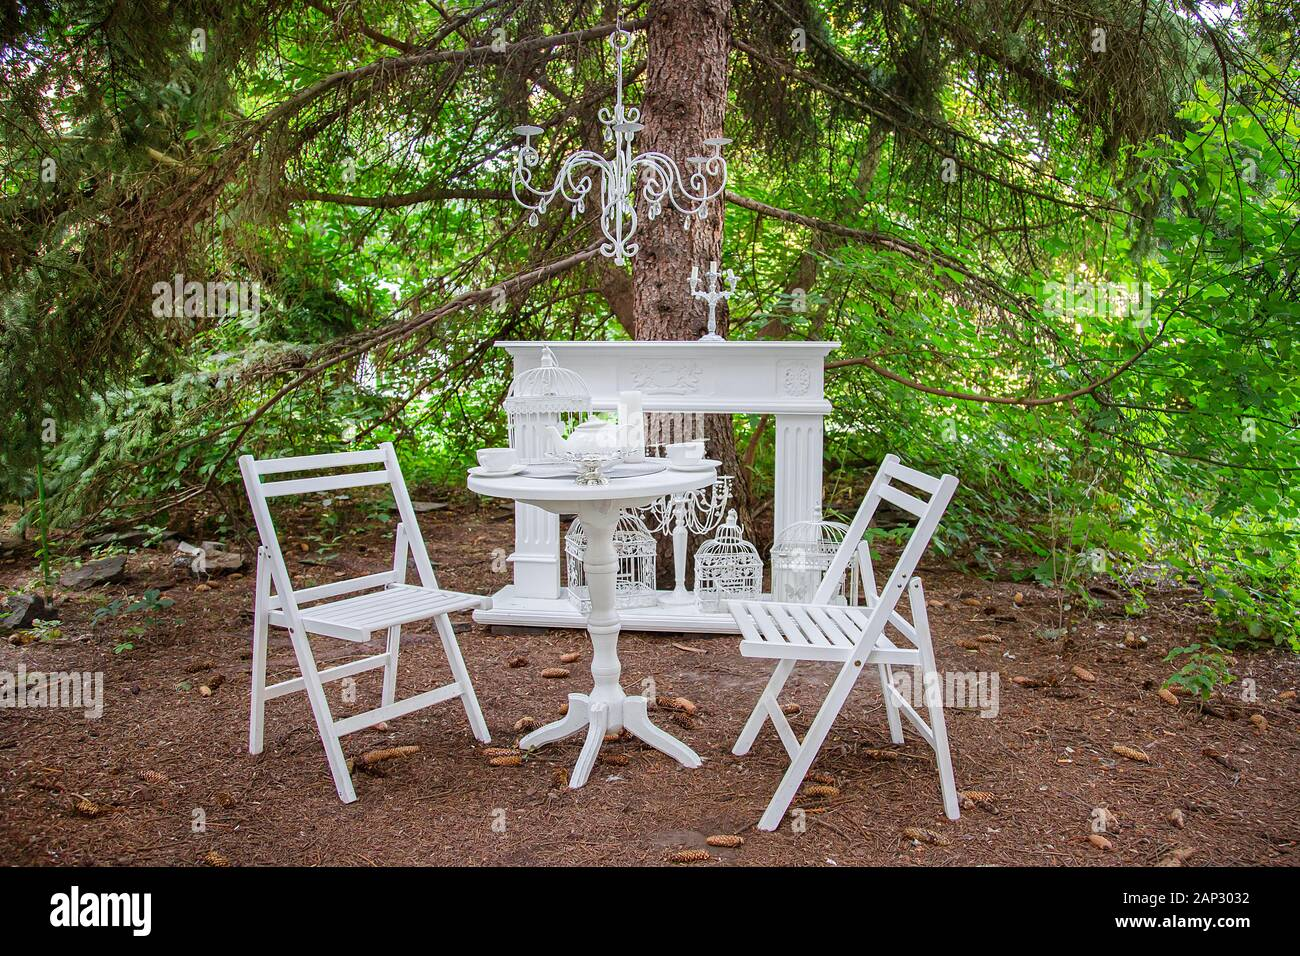 White Outdoor garden furniture. Two wooden chairs and a table in